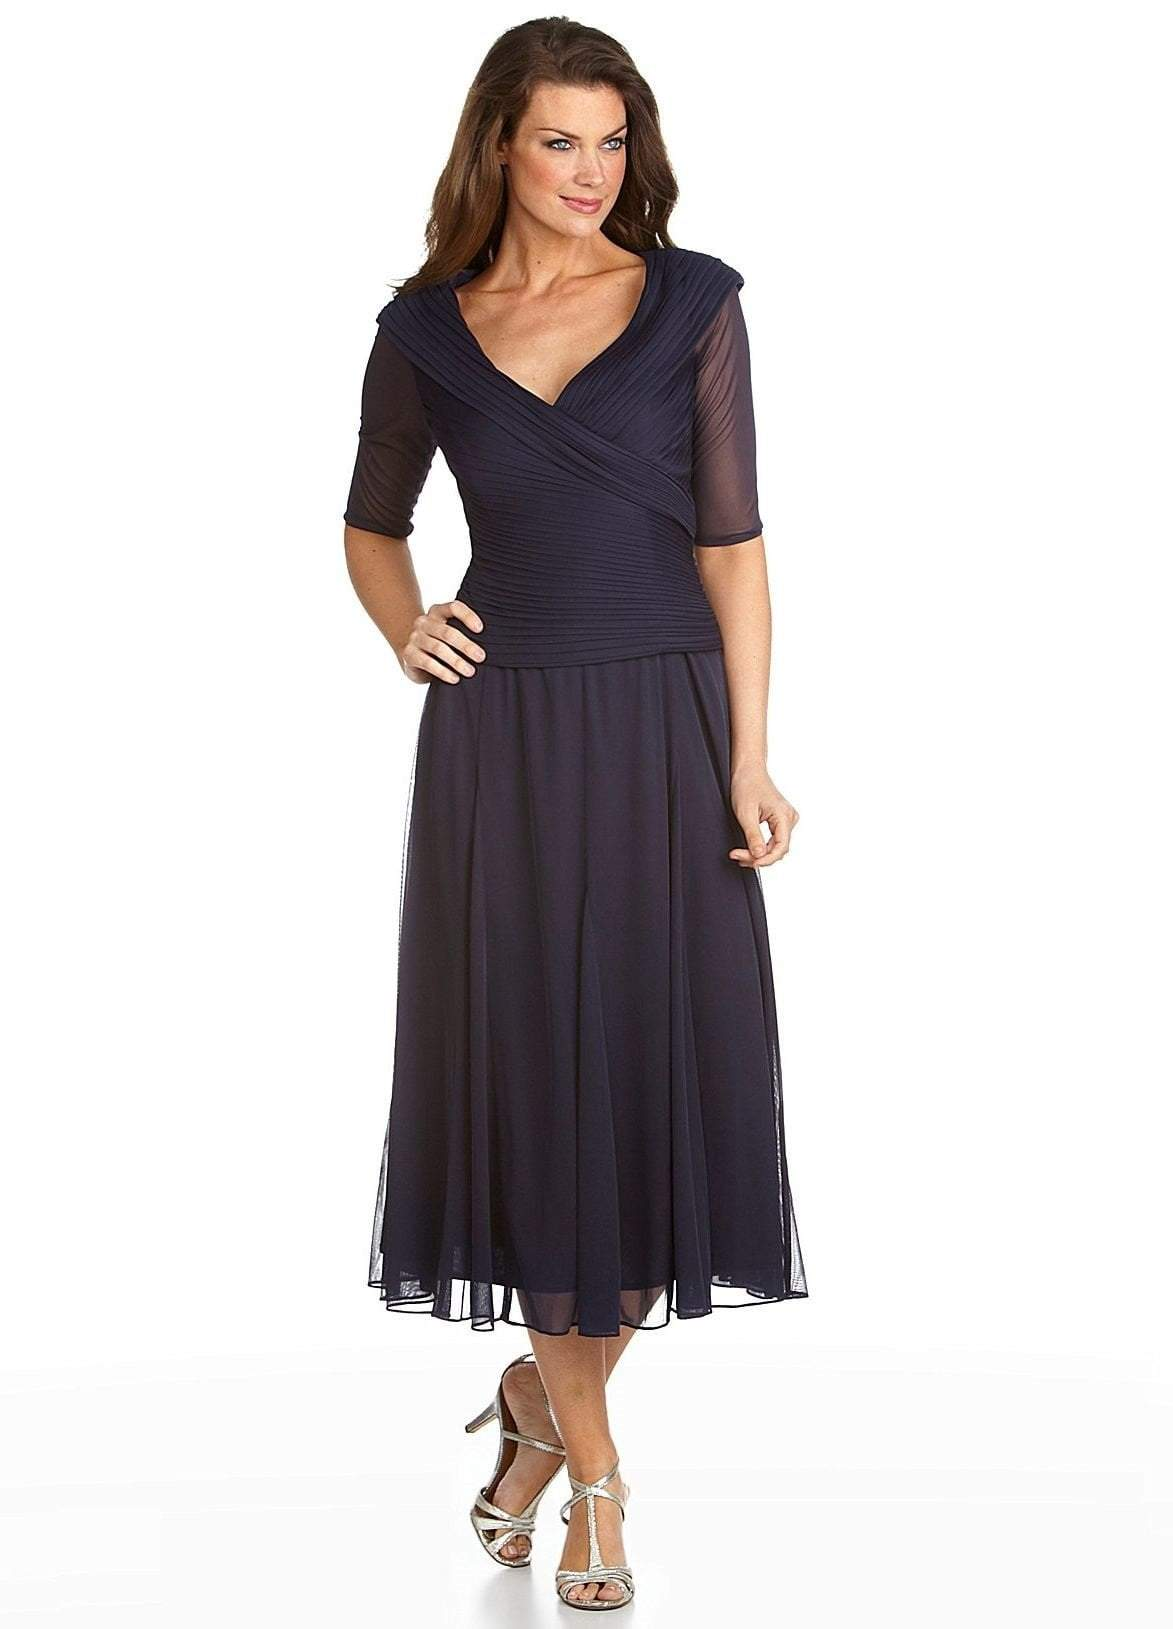 Alex Evenings - 132141SC Wide V Neck Blouson Tea Length Dress